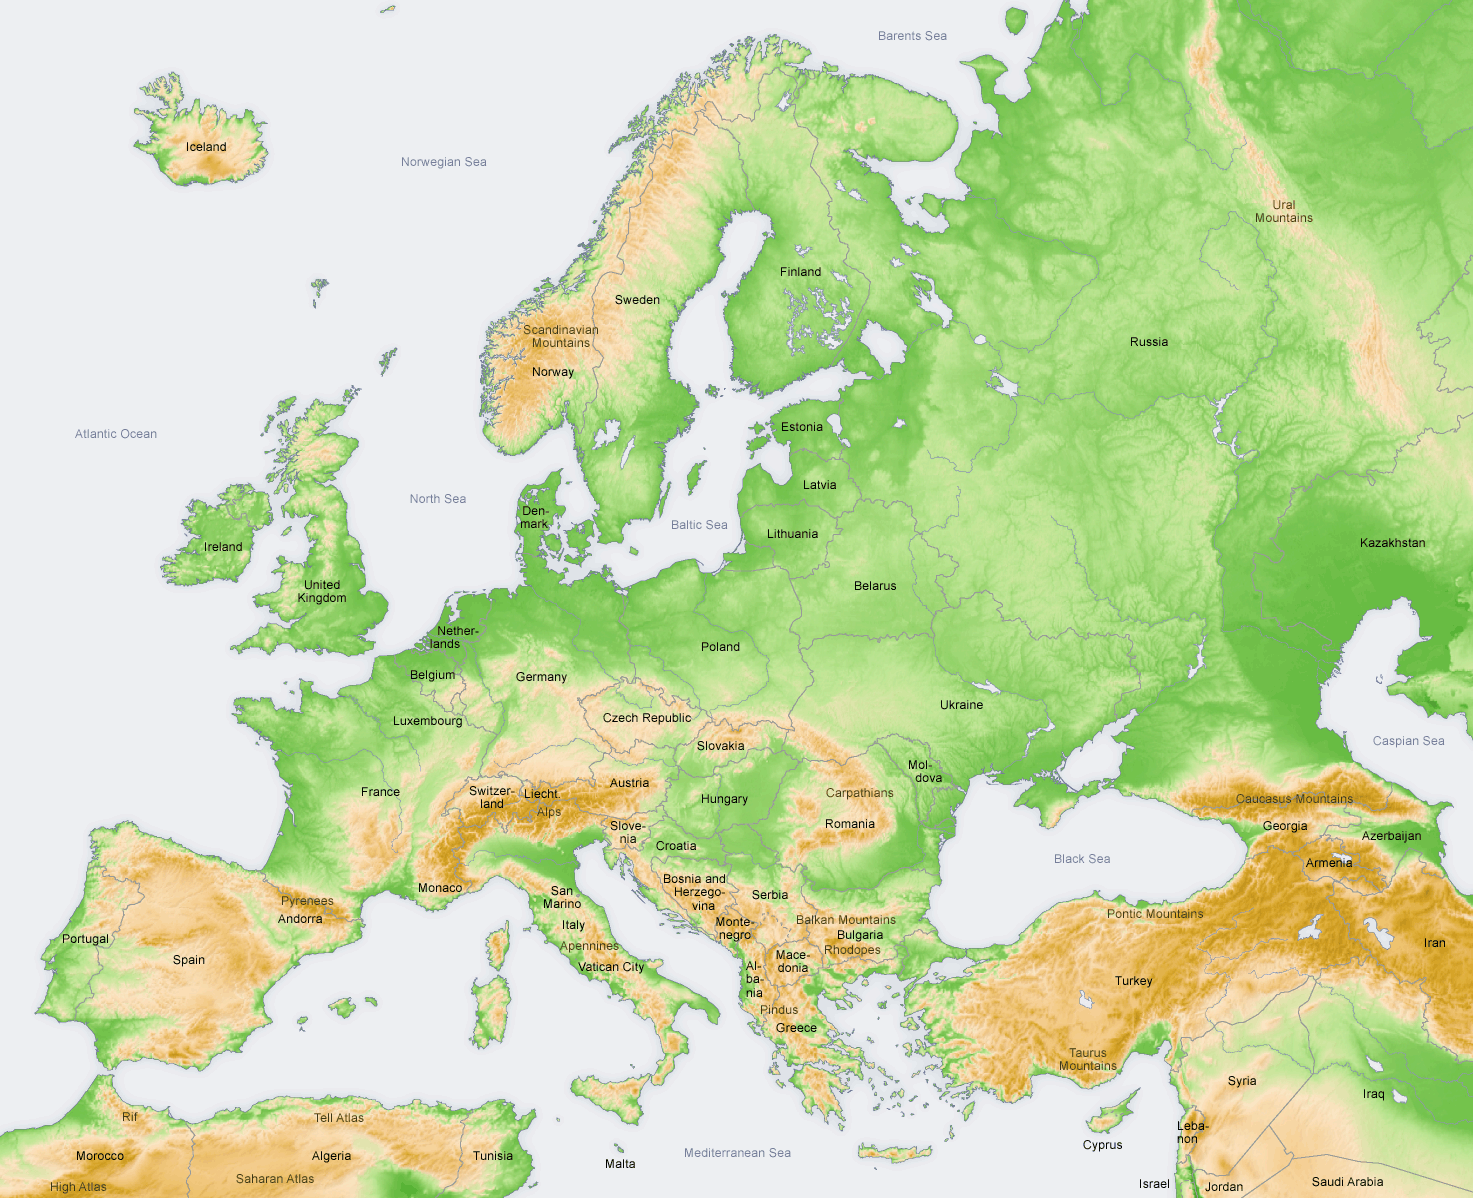 FileEurope topography map enpng Wikimedia Commons